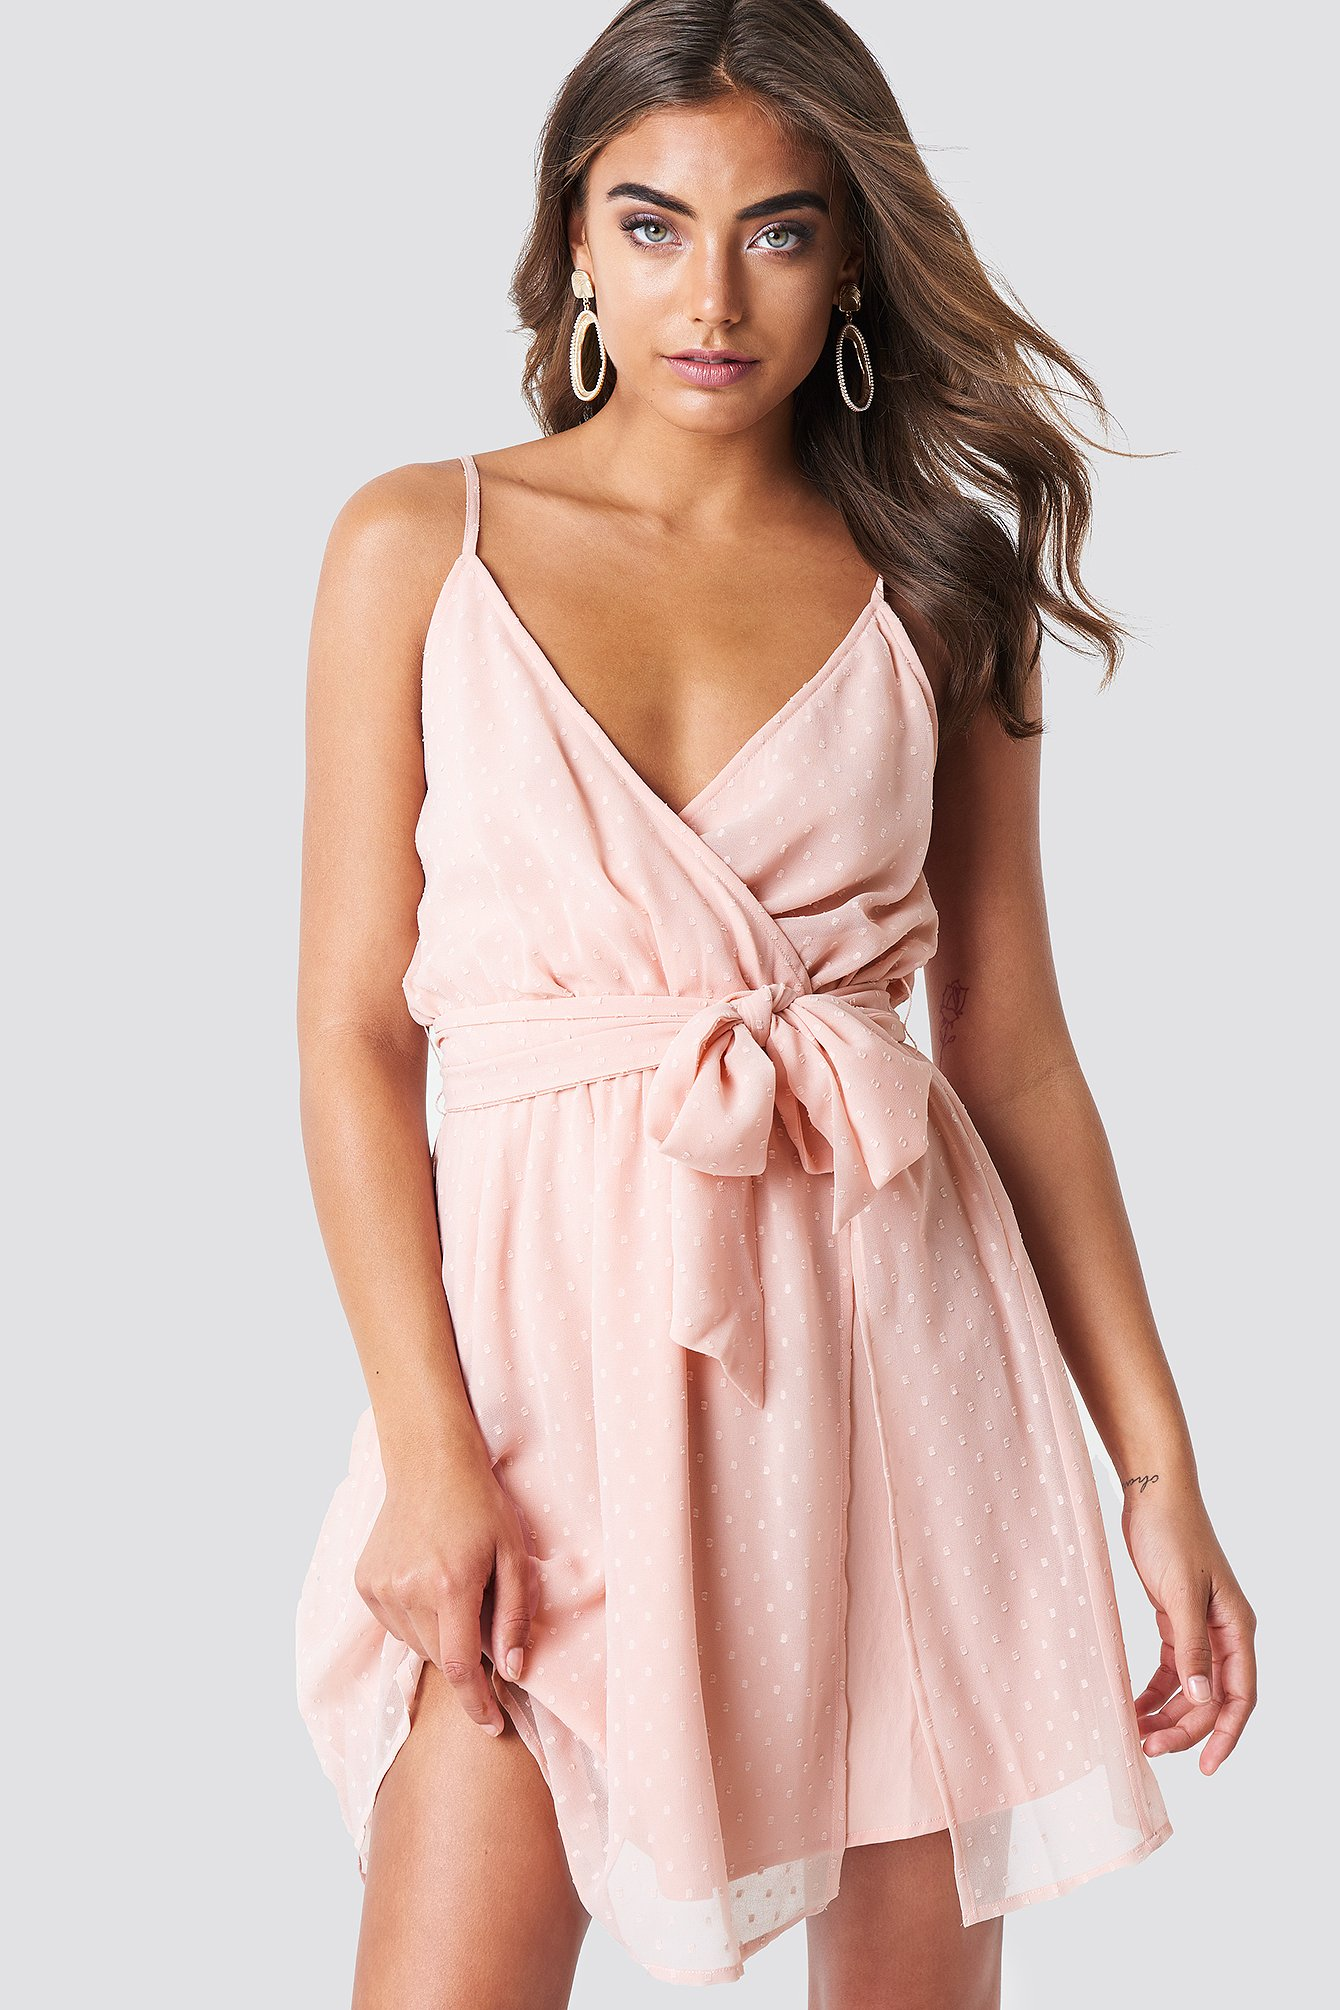 Chiffon Short Dress Light Rose Pink  28c2d7ae8